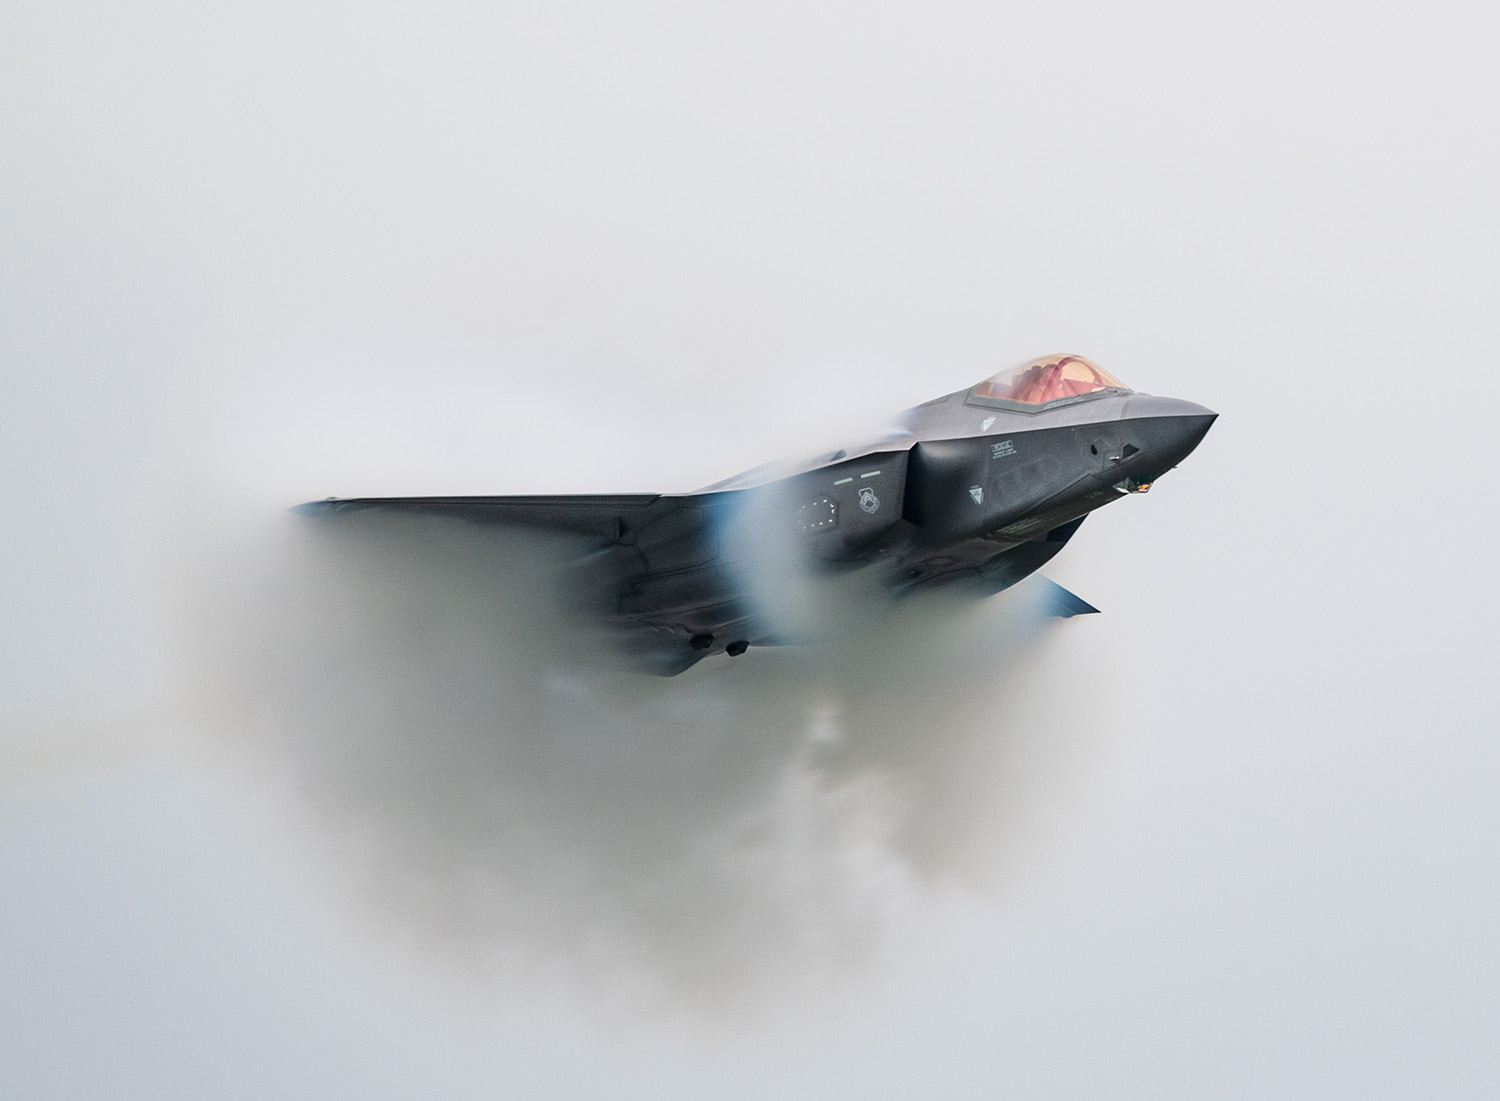 Capt. Andrew Olson, F-35 Lightning II demonstration team pilot and commander, performs aerial maneuvers during the Aero Gatineau-Ottawa Airshow in Quebec, Canada, Sept. 7, 2019. (Senior Airman Alexander Cook/Air Force)